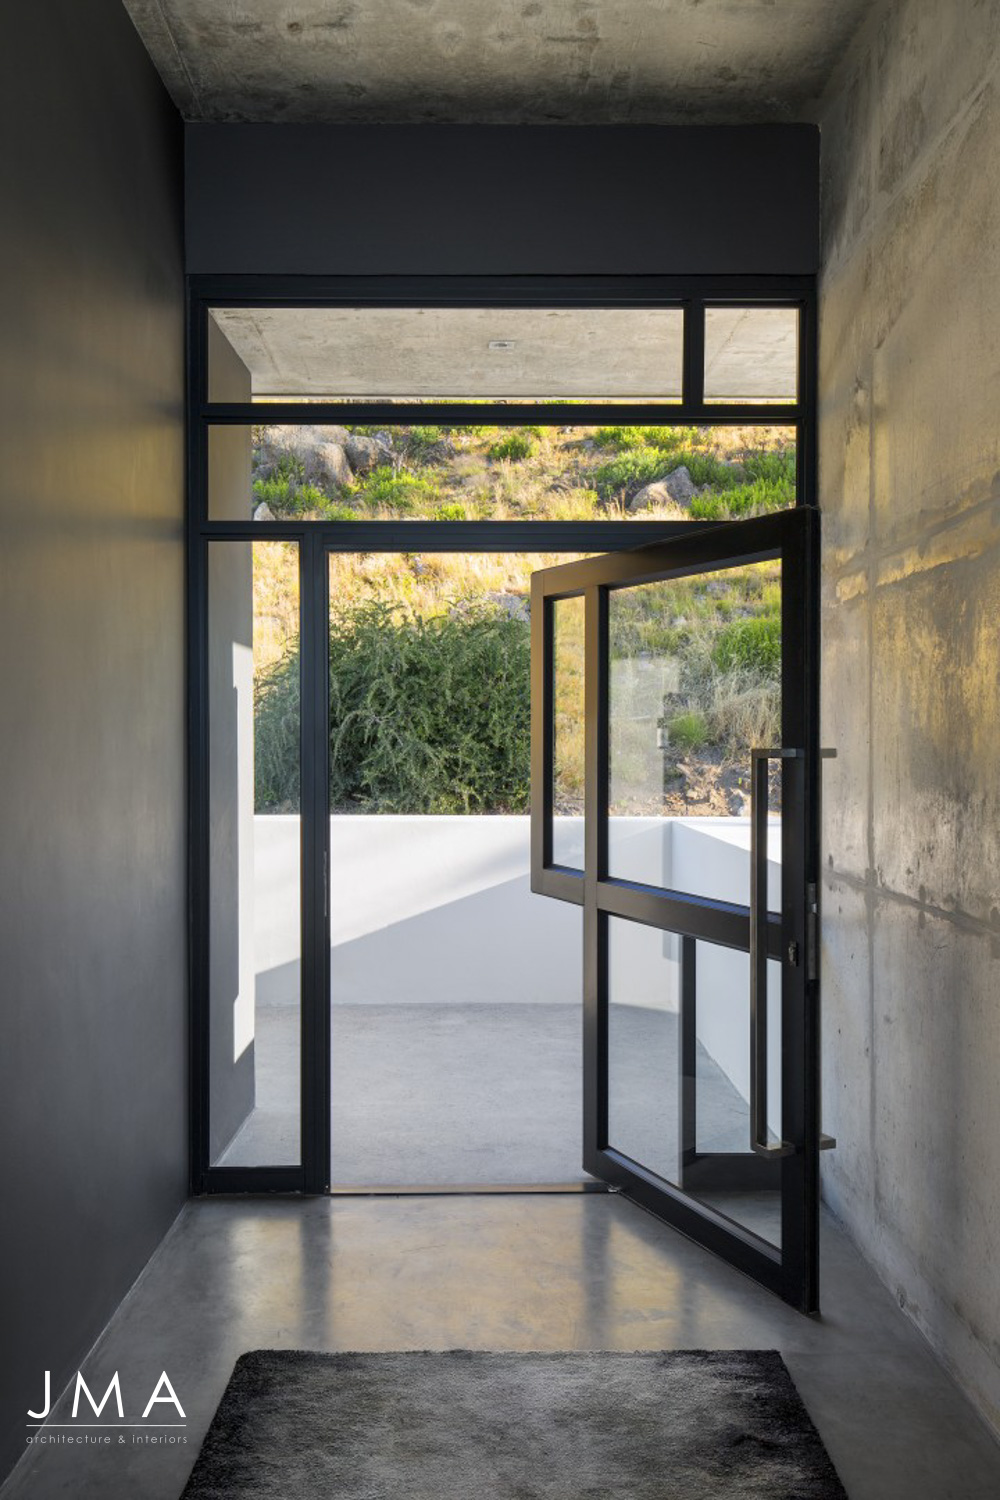 Fresnaye Pool Penthouse Entrance interior architecture design by JMA.jpg